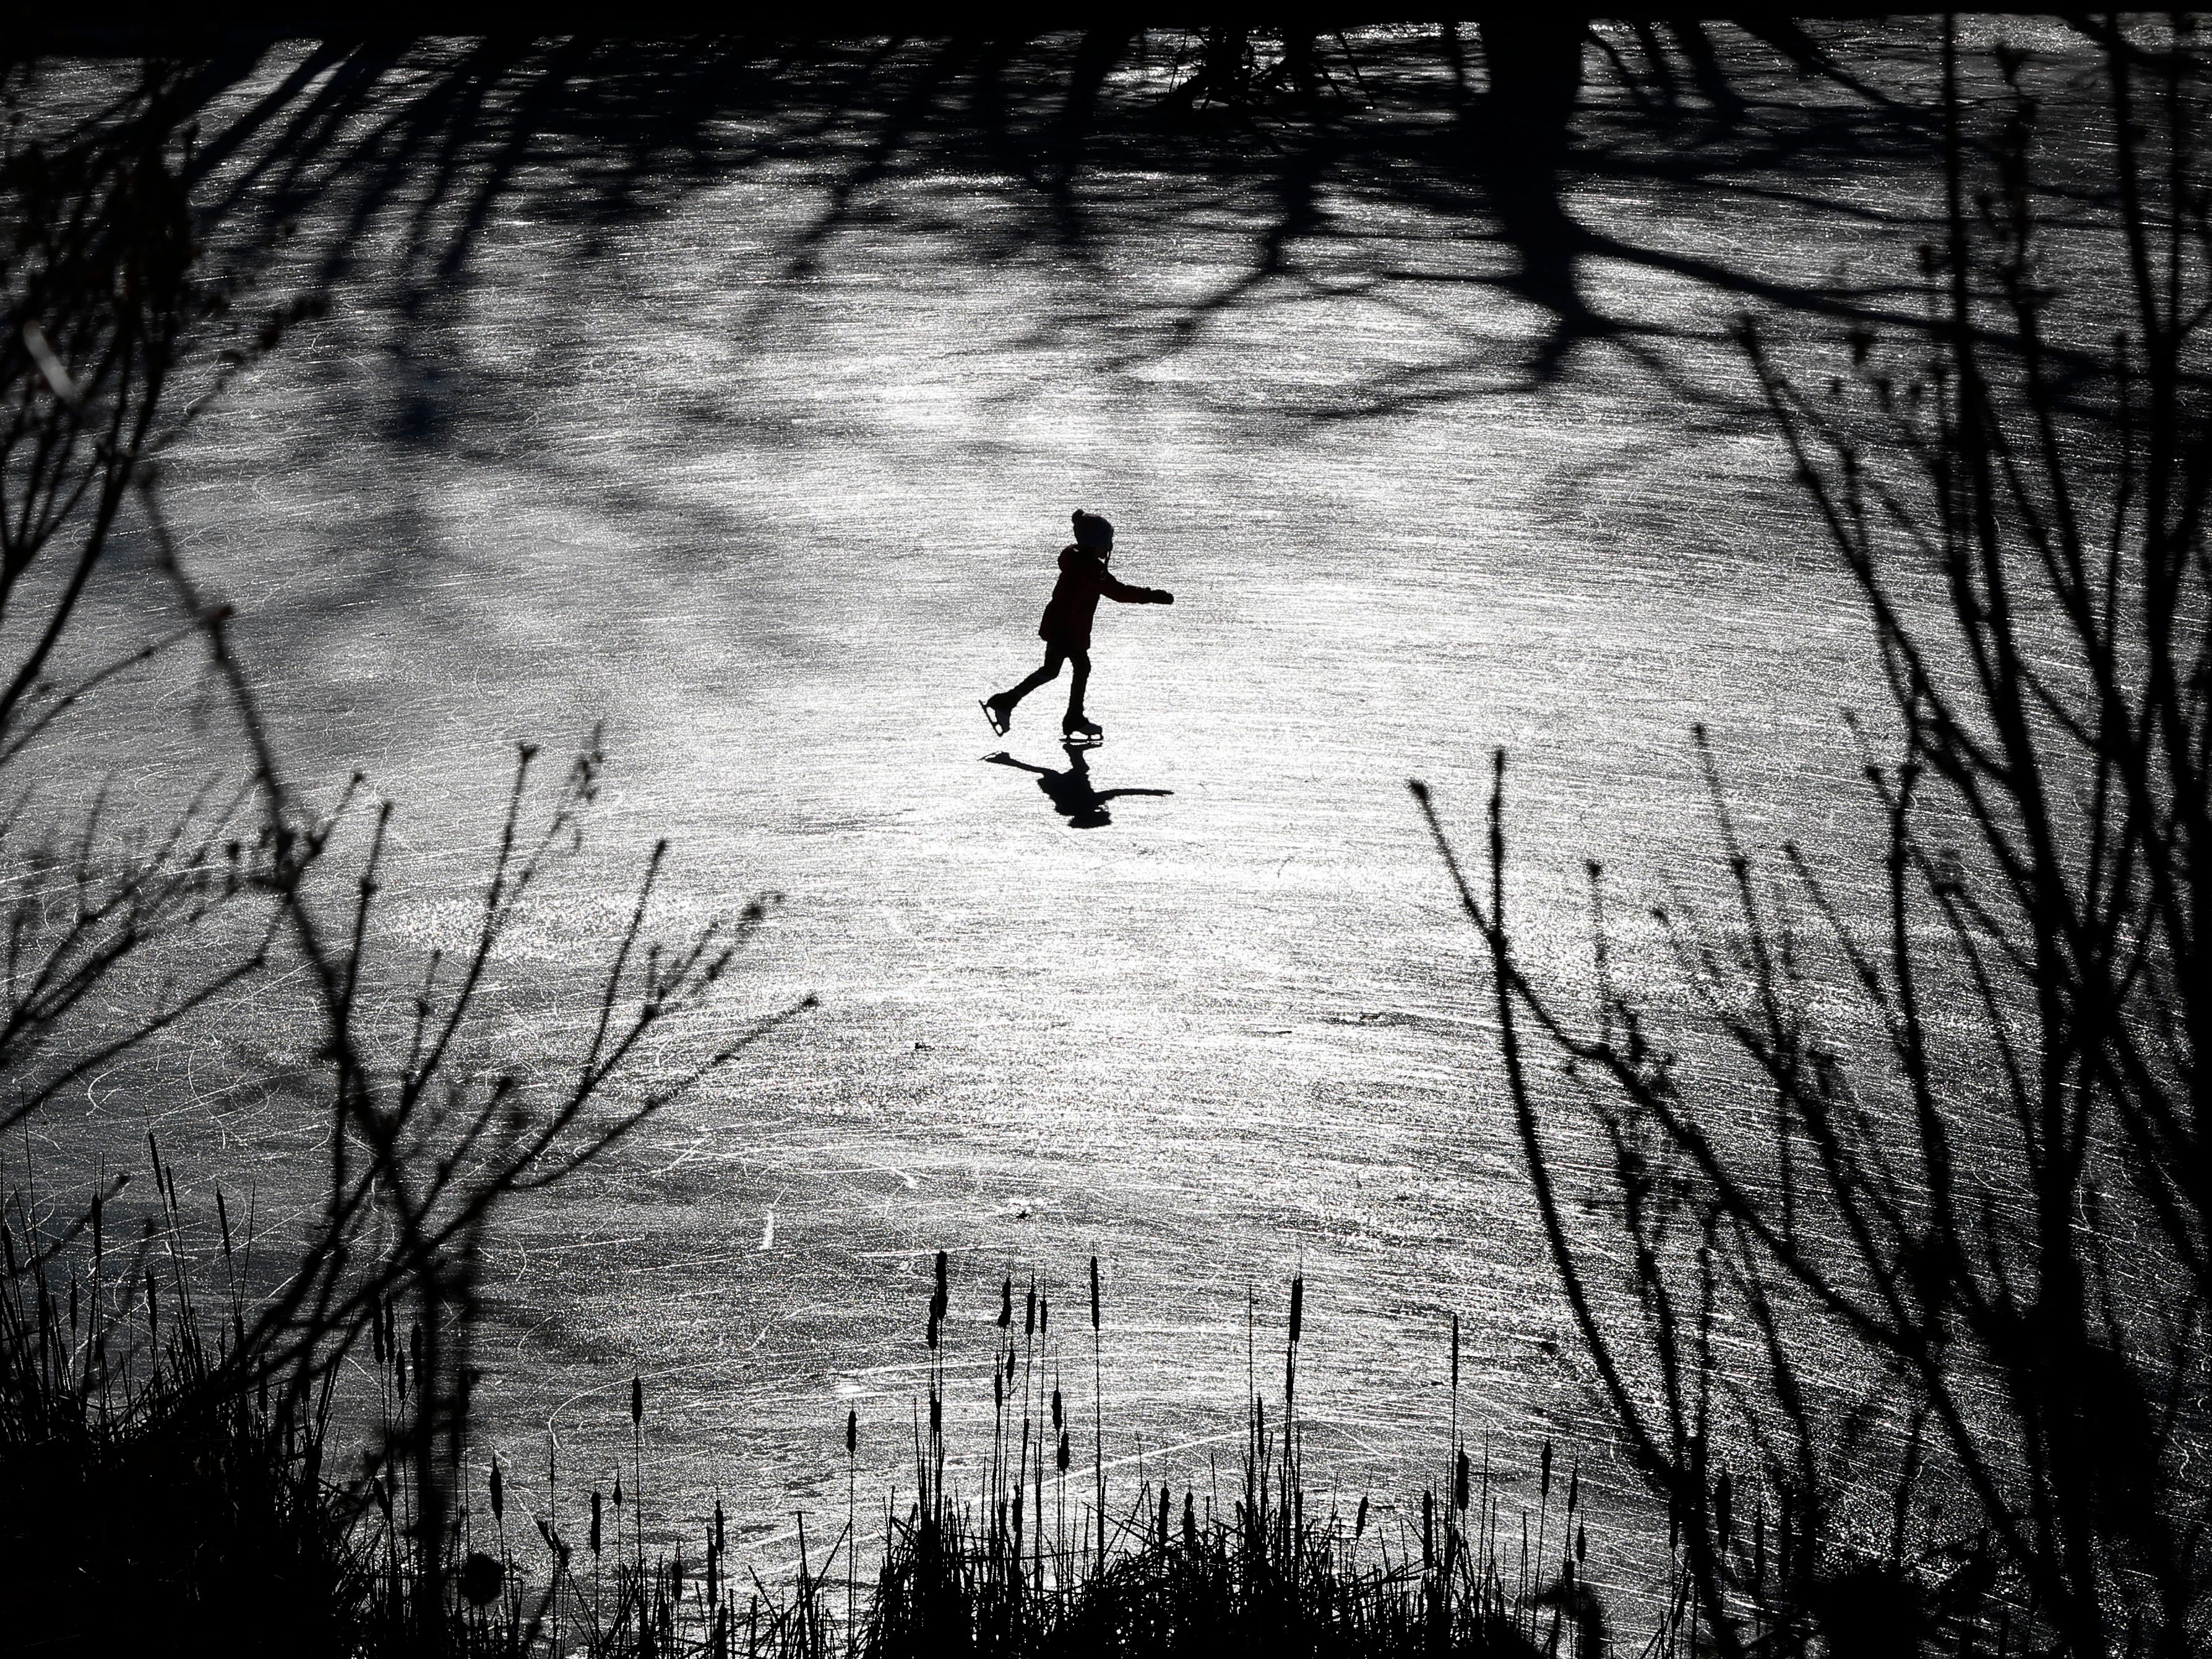 A girl skates across a frozen pond, Dec. 26, 2018, in Freeport, Maine.